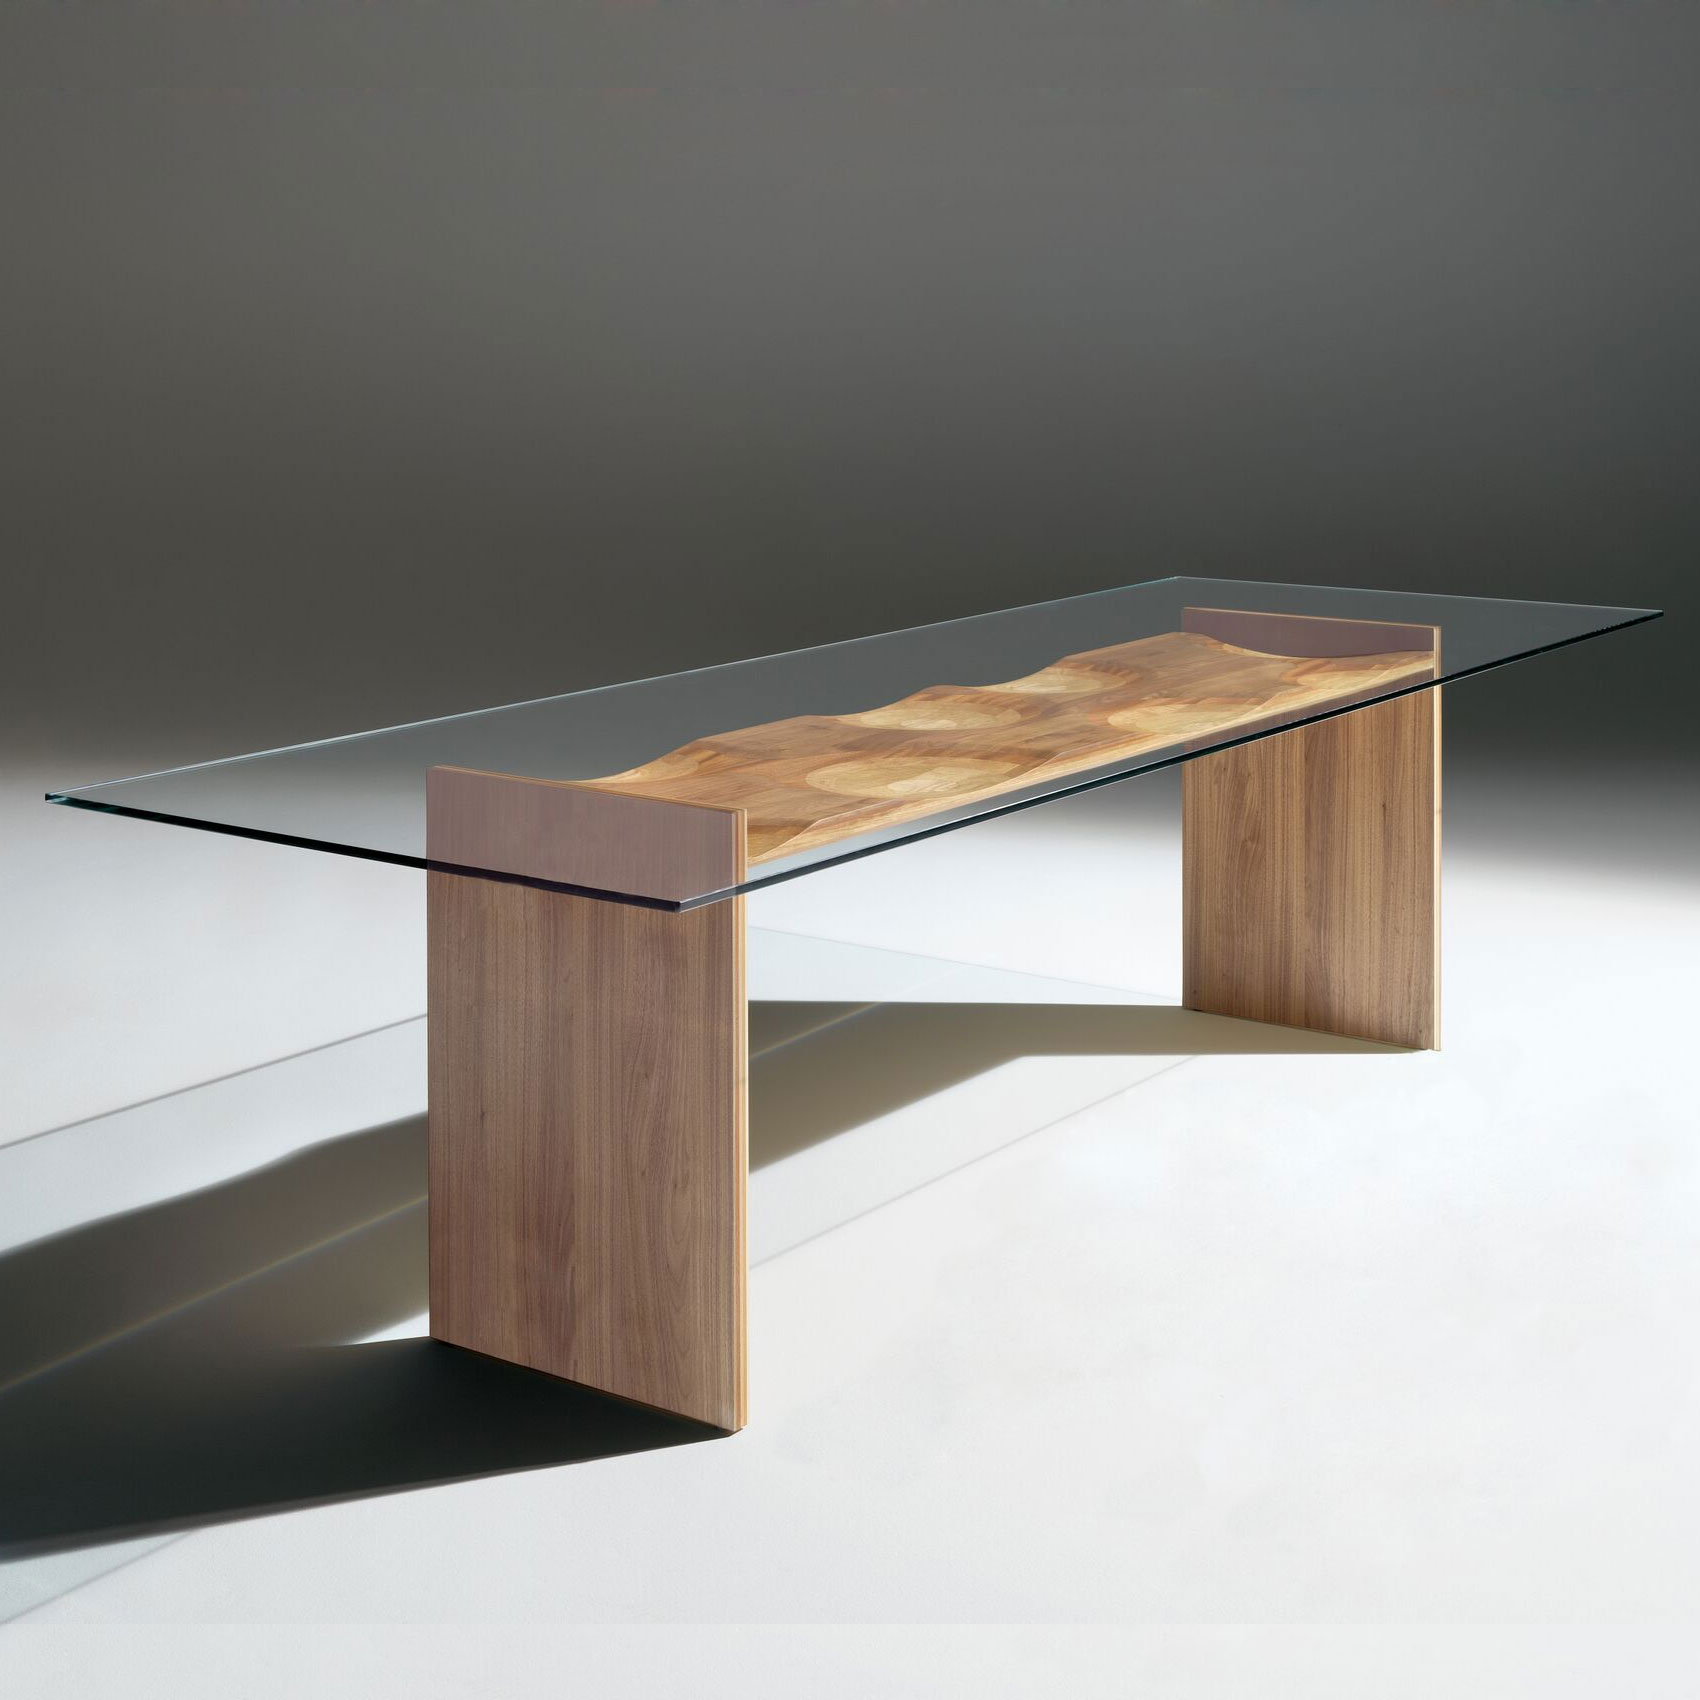 Horm w Toyo Ito Ripples Table